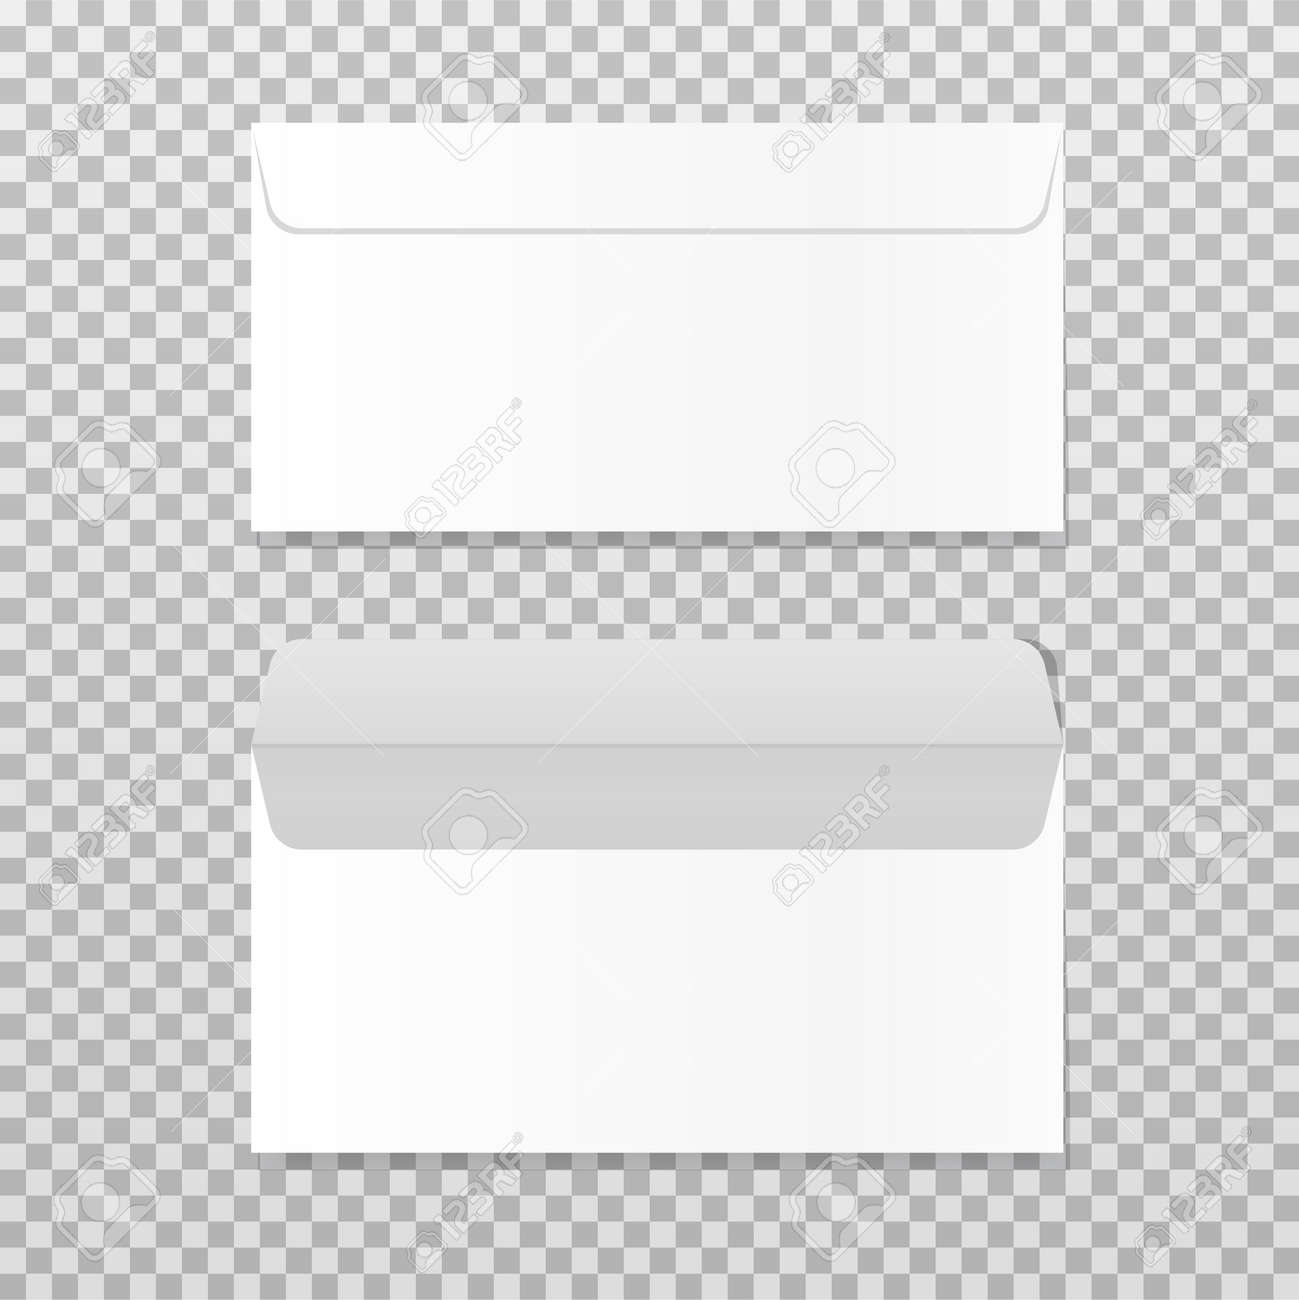 Open and closed empty envelope mock up. Realistic blank letter template. Paper C4 white envelopes front view. Vector illustration isolated on transparent background. - 169877656